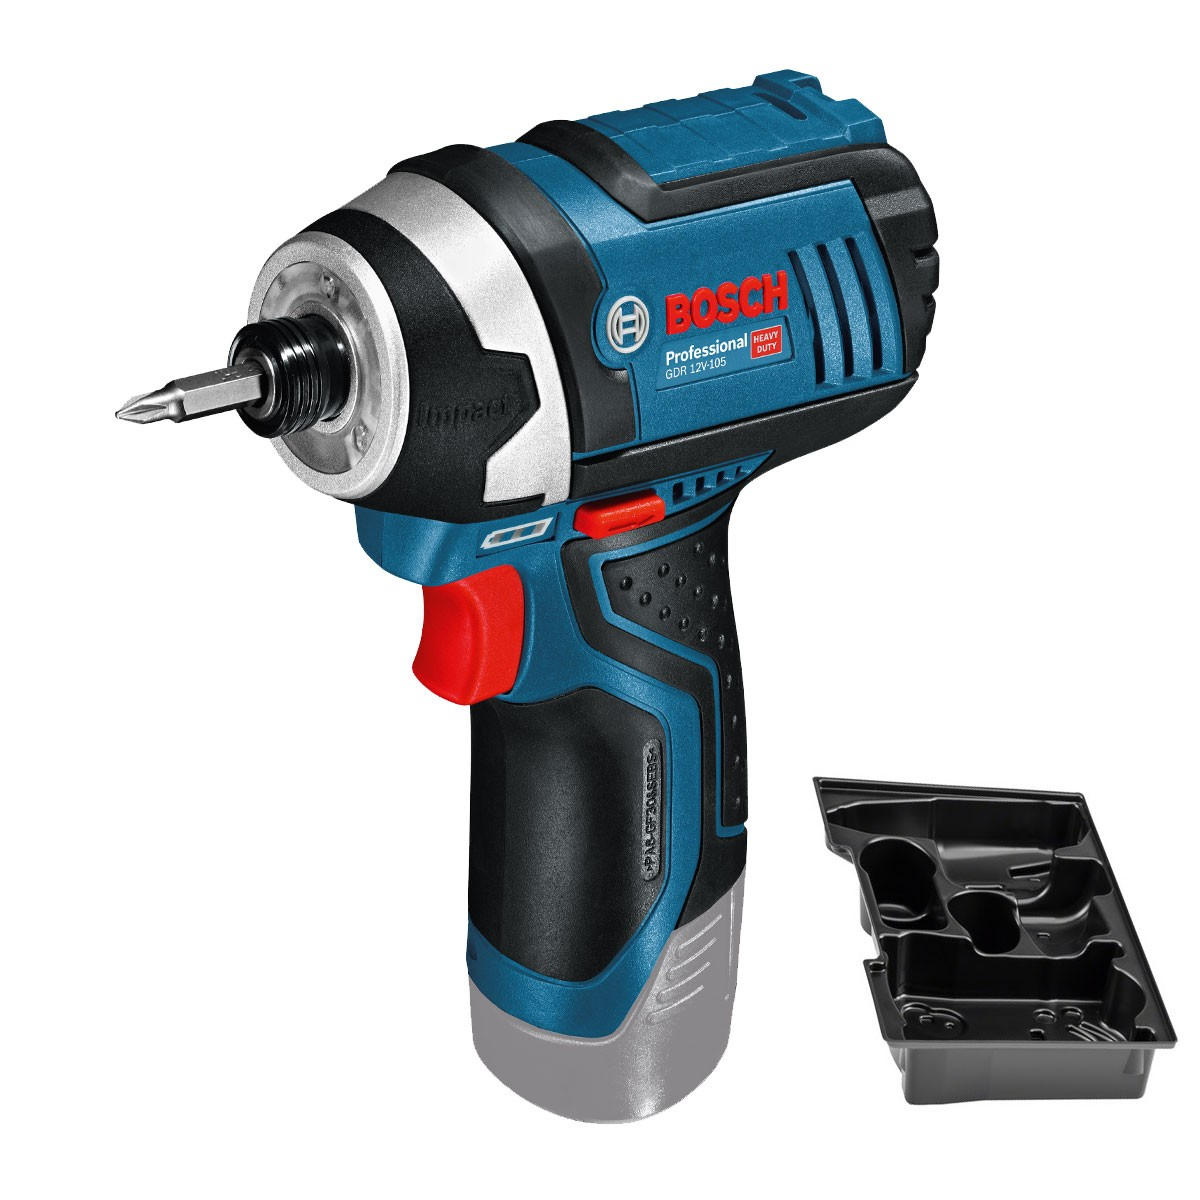 Bosch GDR 10.8-LI (12V-105) Cordless Impact Driver Body Only with Inlay in Carton